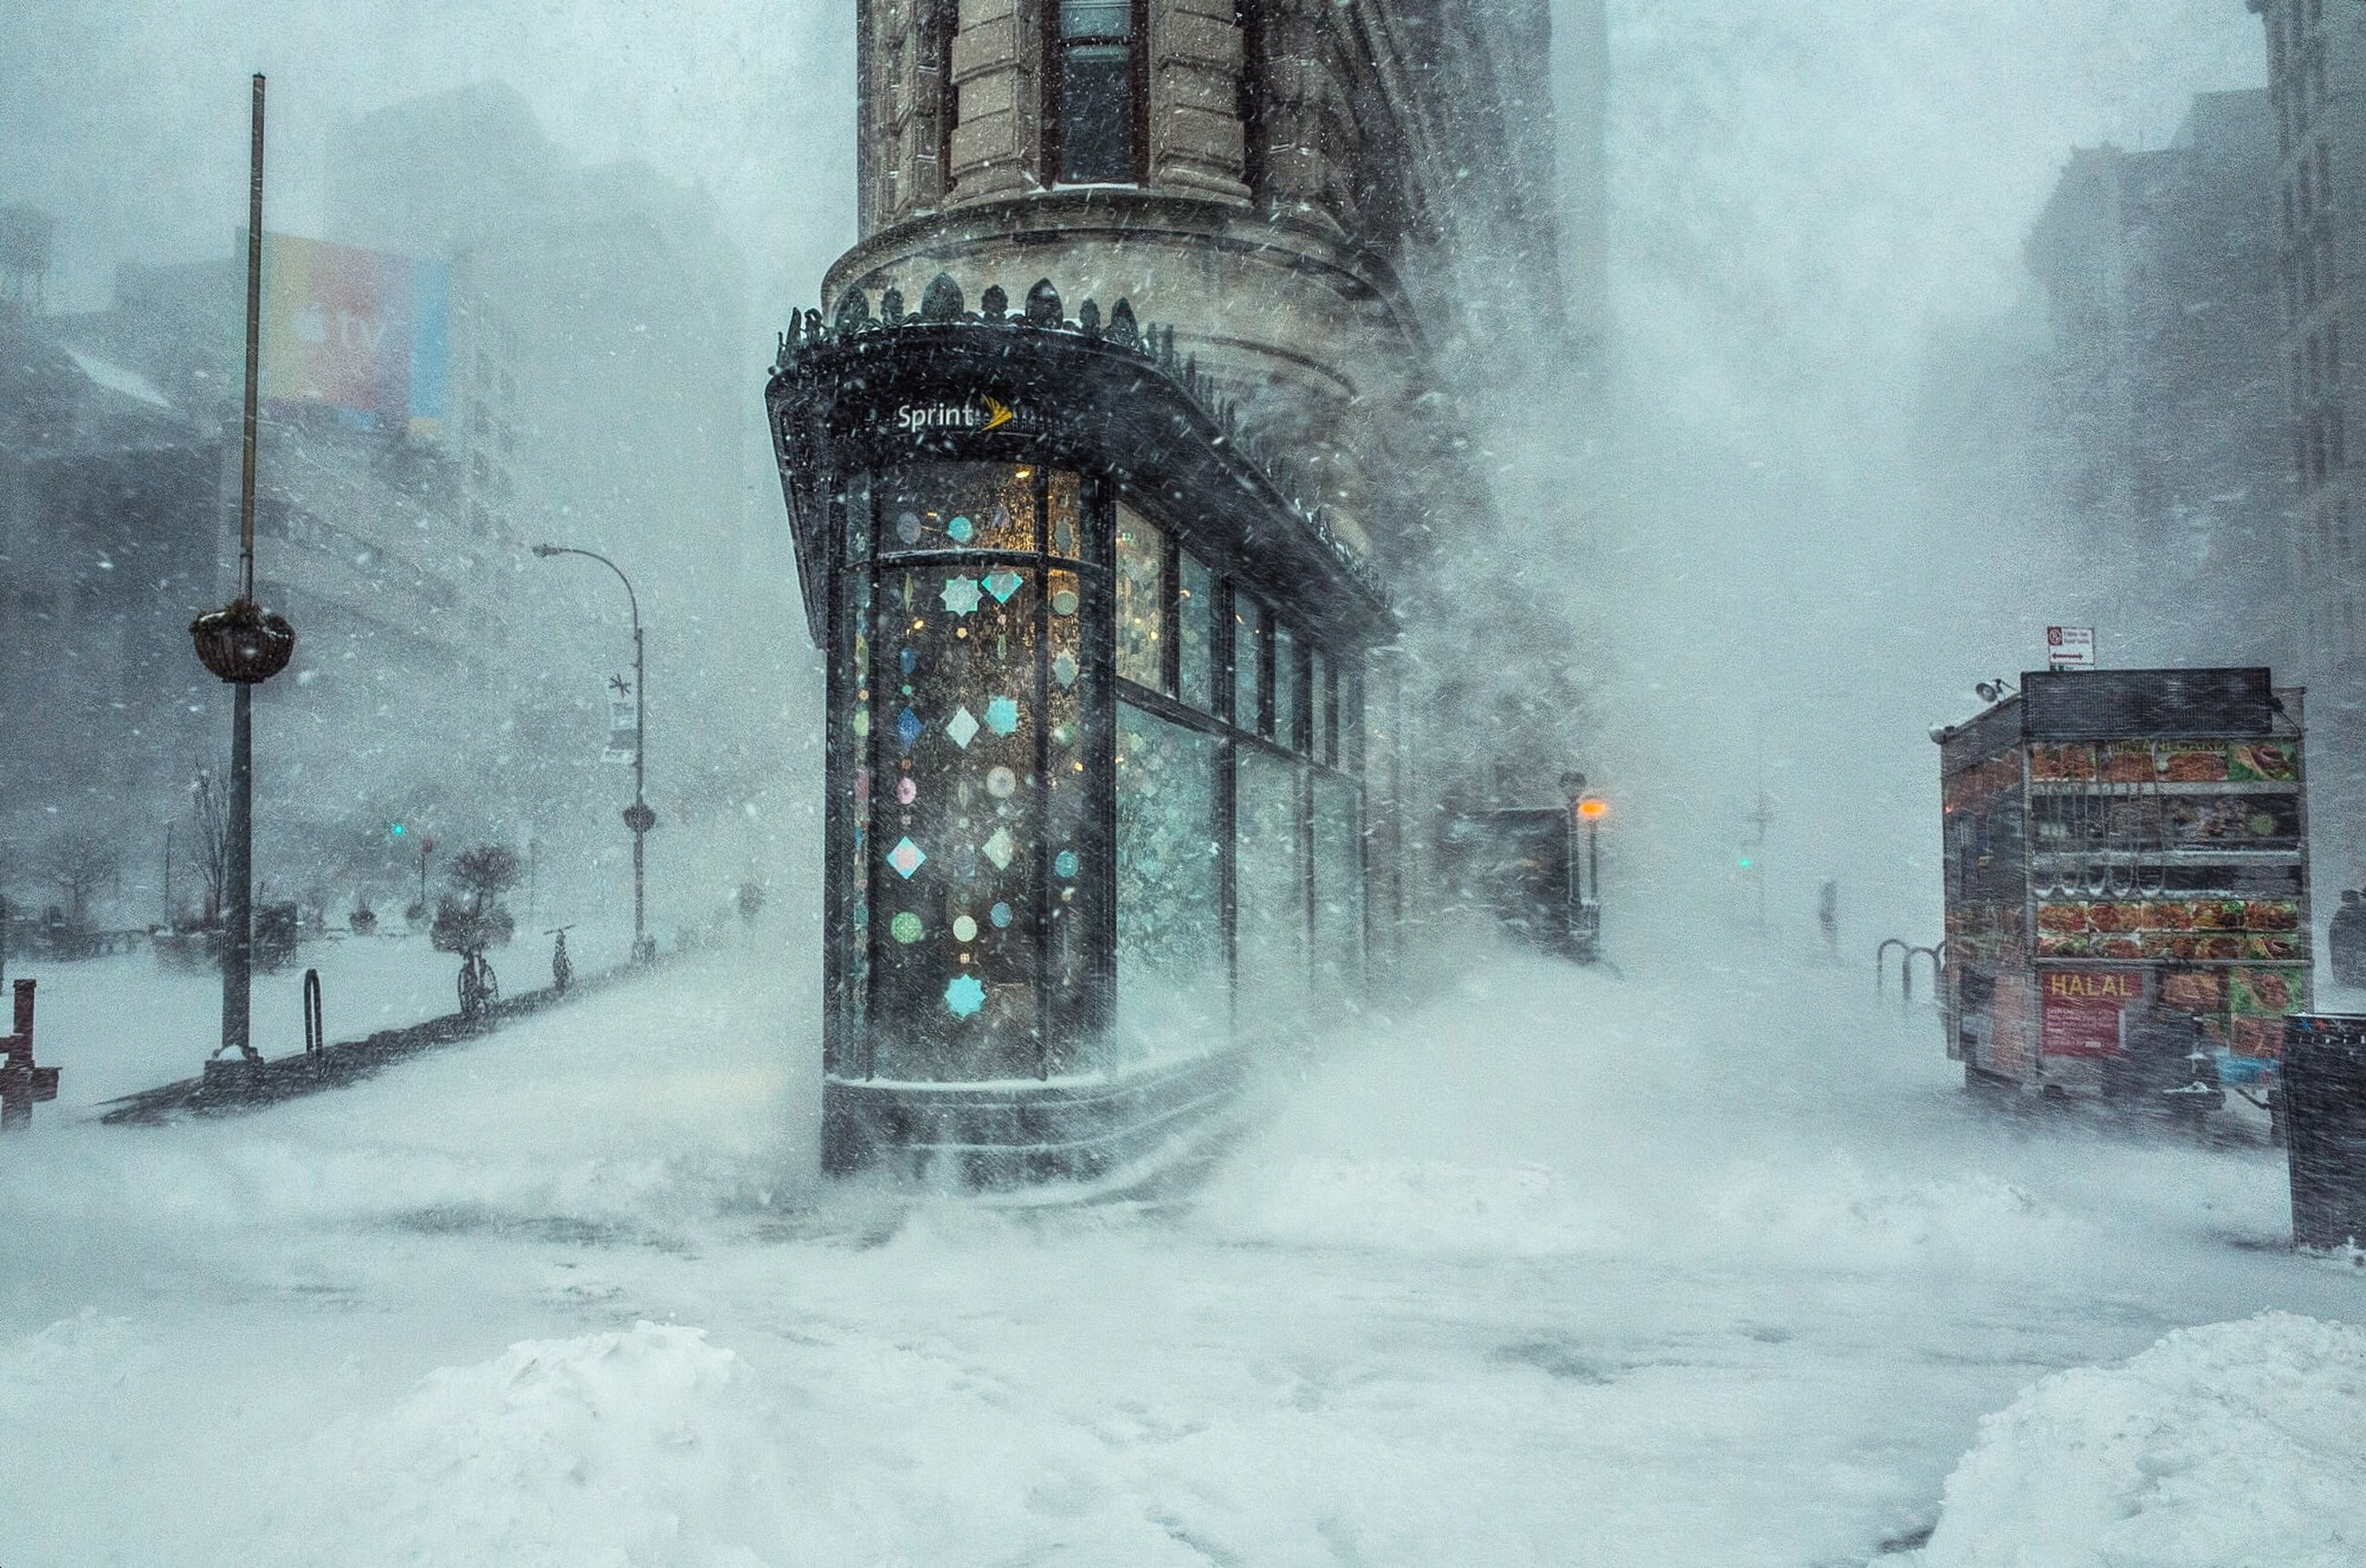 winter, cold temperature, snow, architecture, built structure, season, building exterior, weather, city, frozen, building, covering, travel destinations, glass - material, window, incidental people, day, outdoors, wet, motion